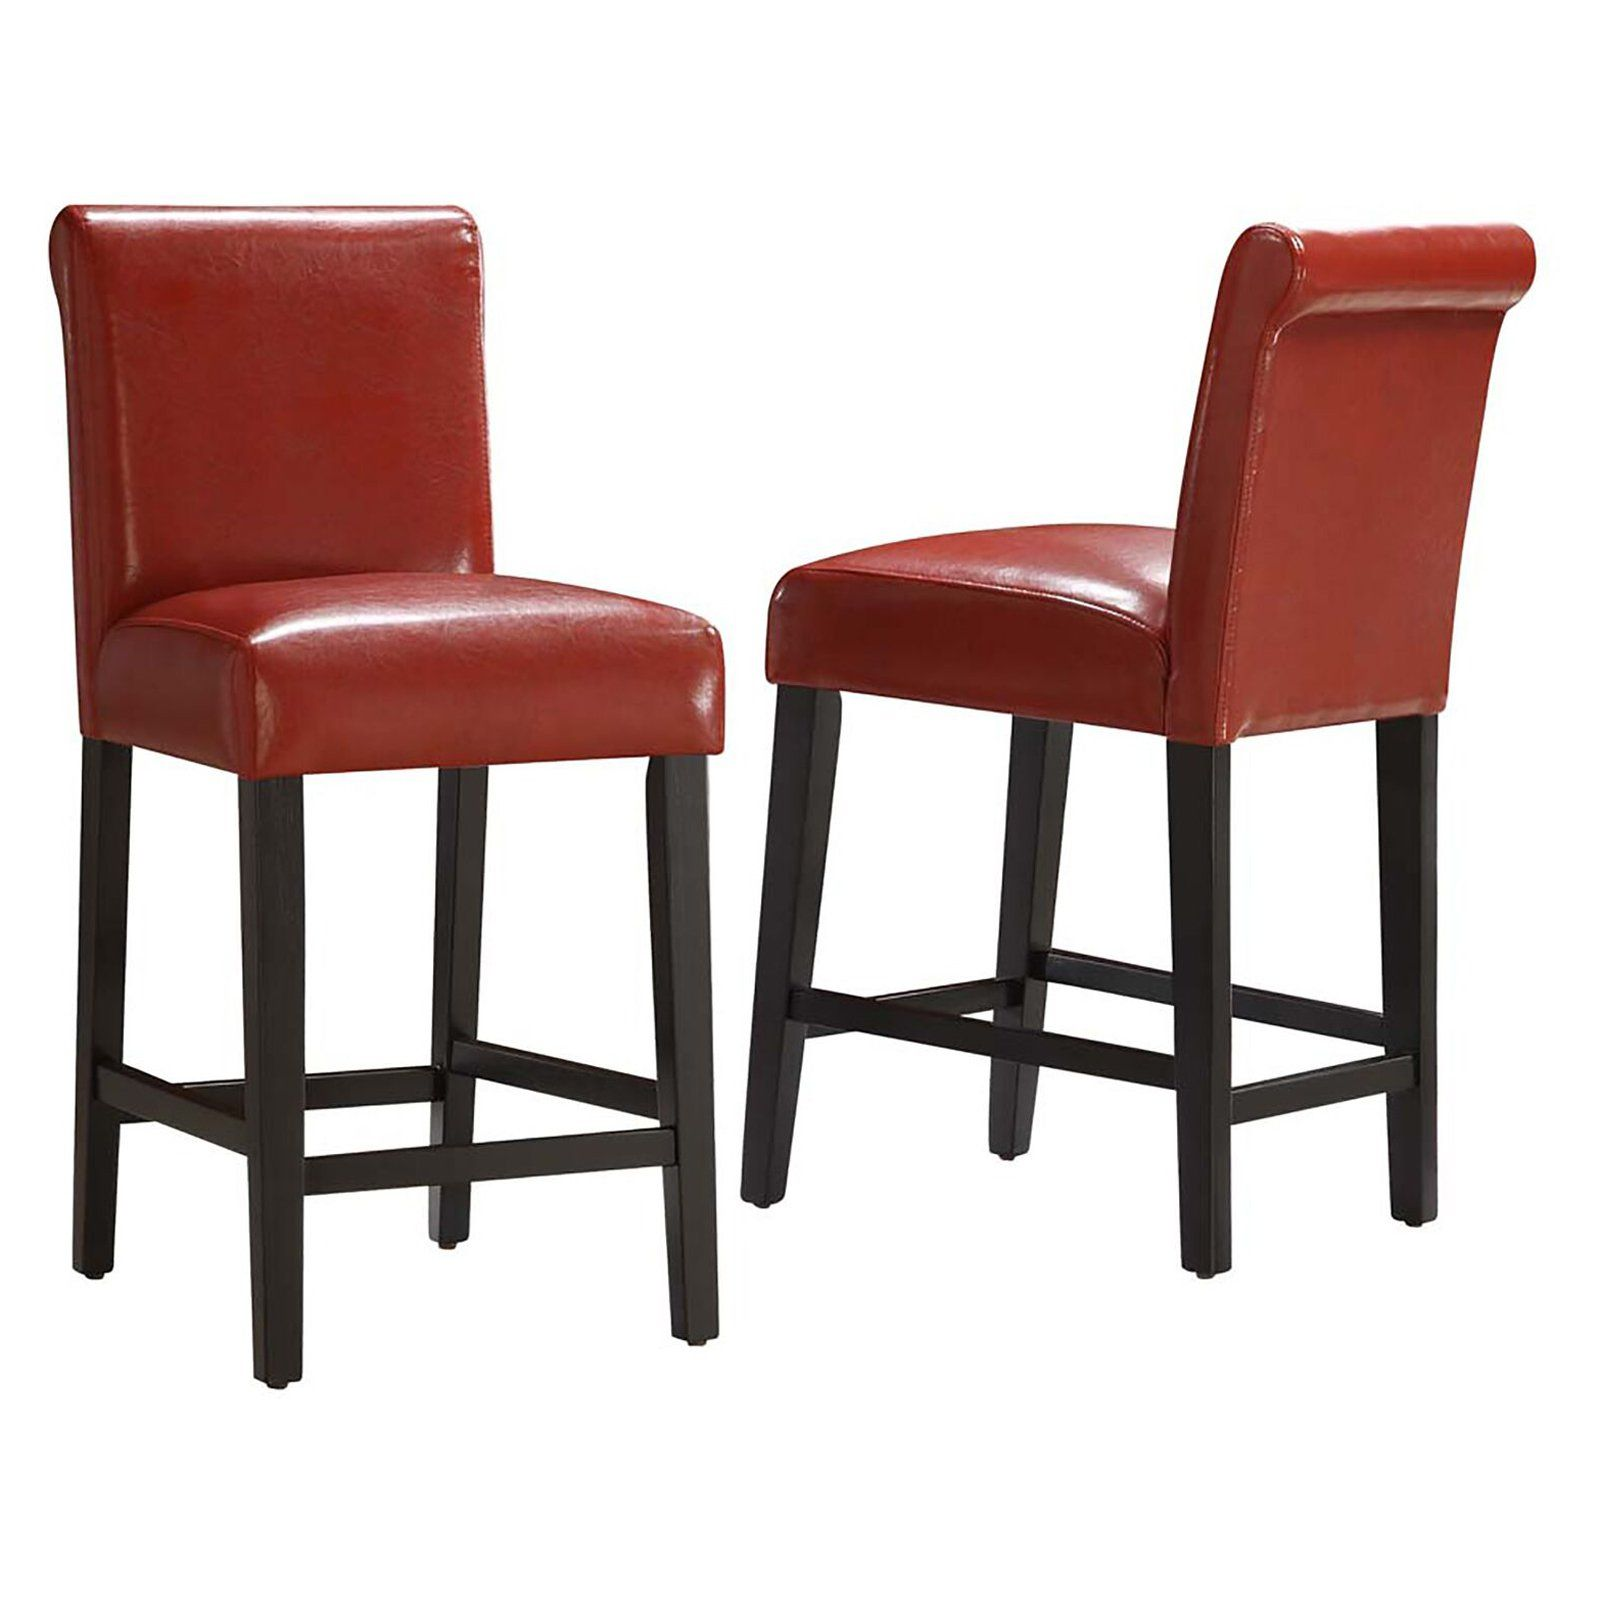 Weston Home Arica 24 In Faux Leather Counter Stool Set Of 2 Casas Ideias